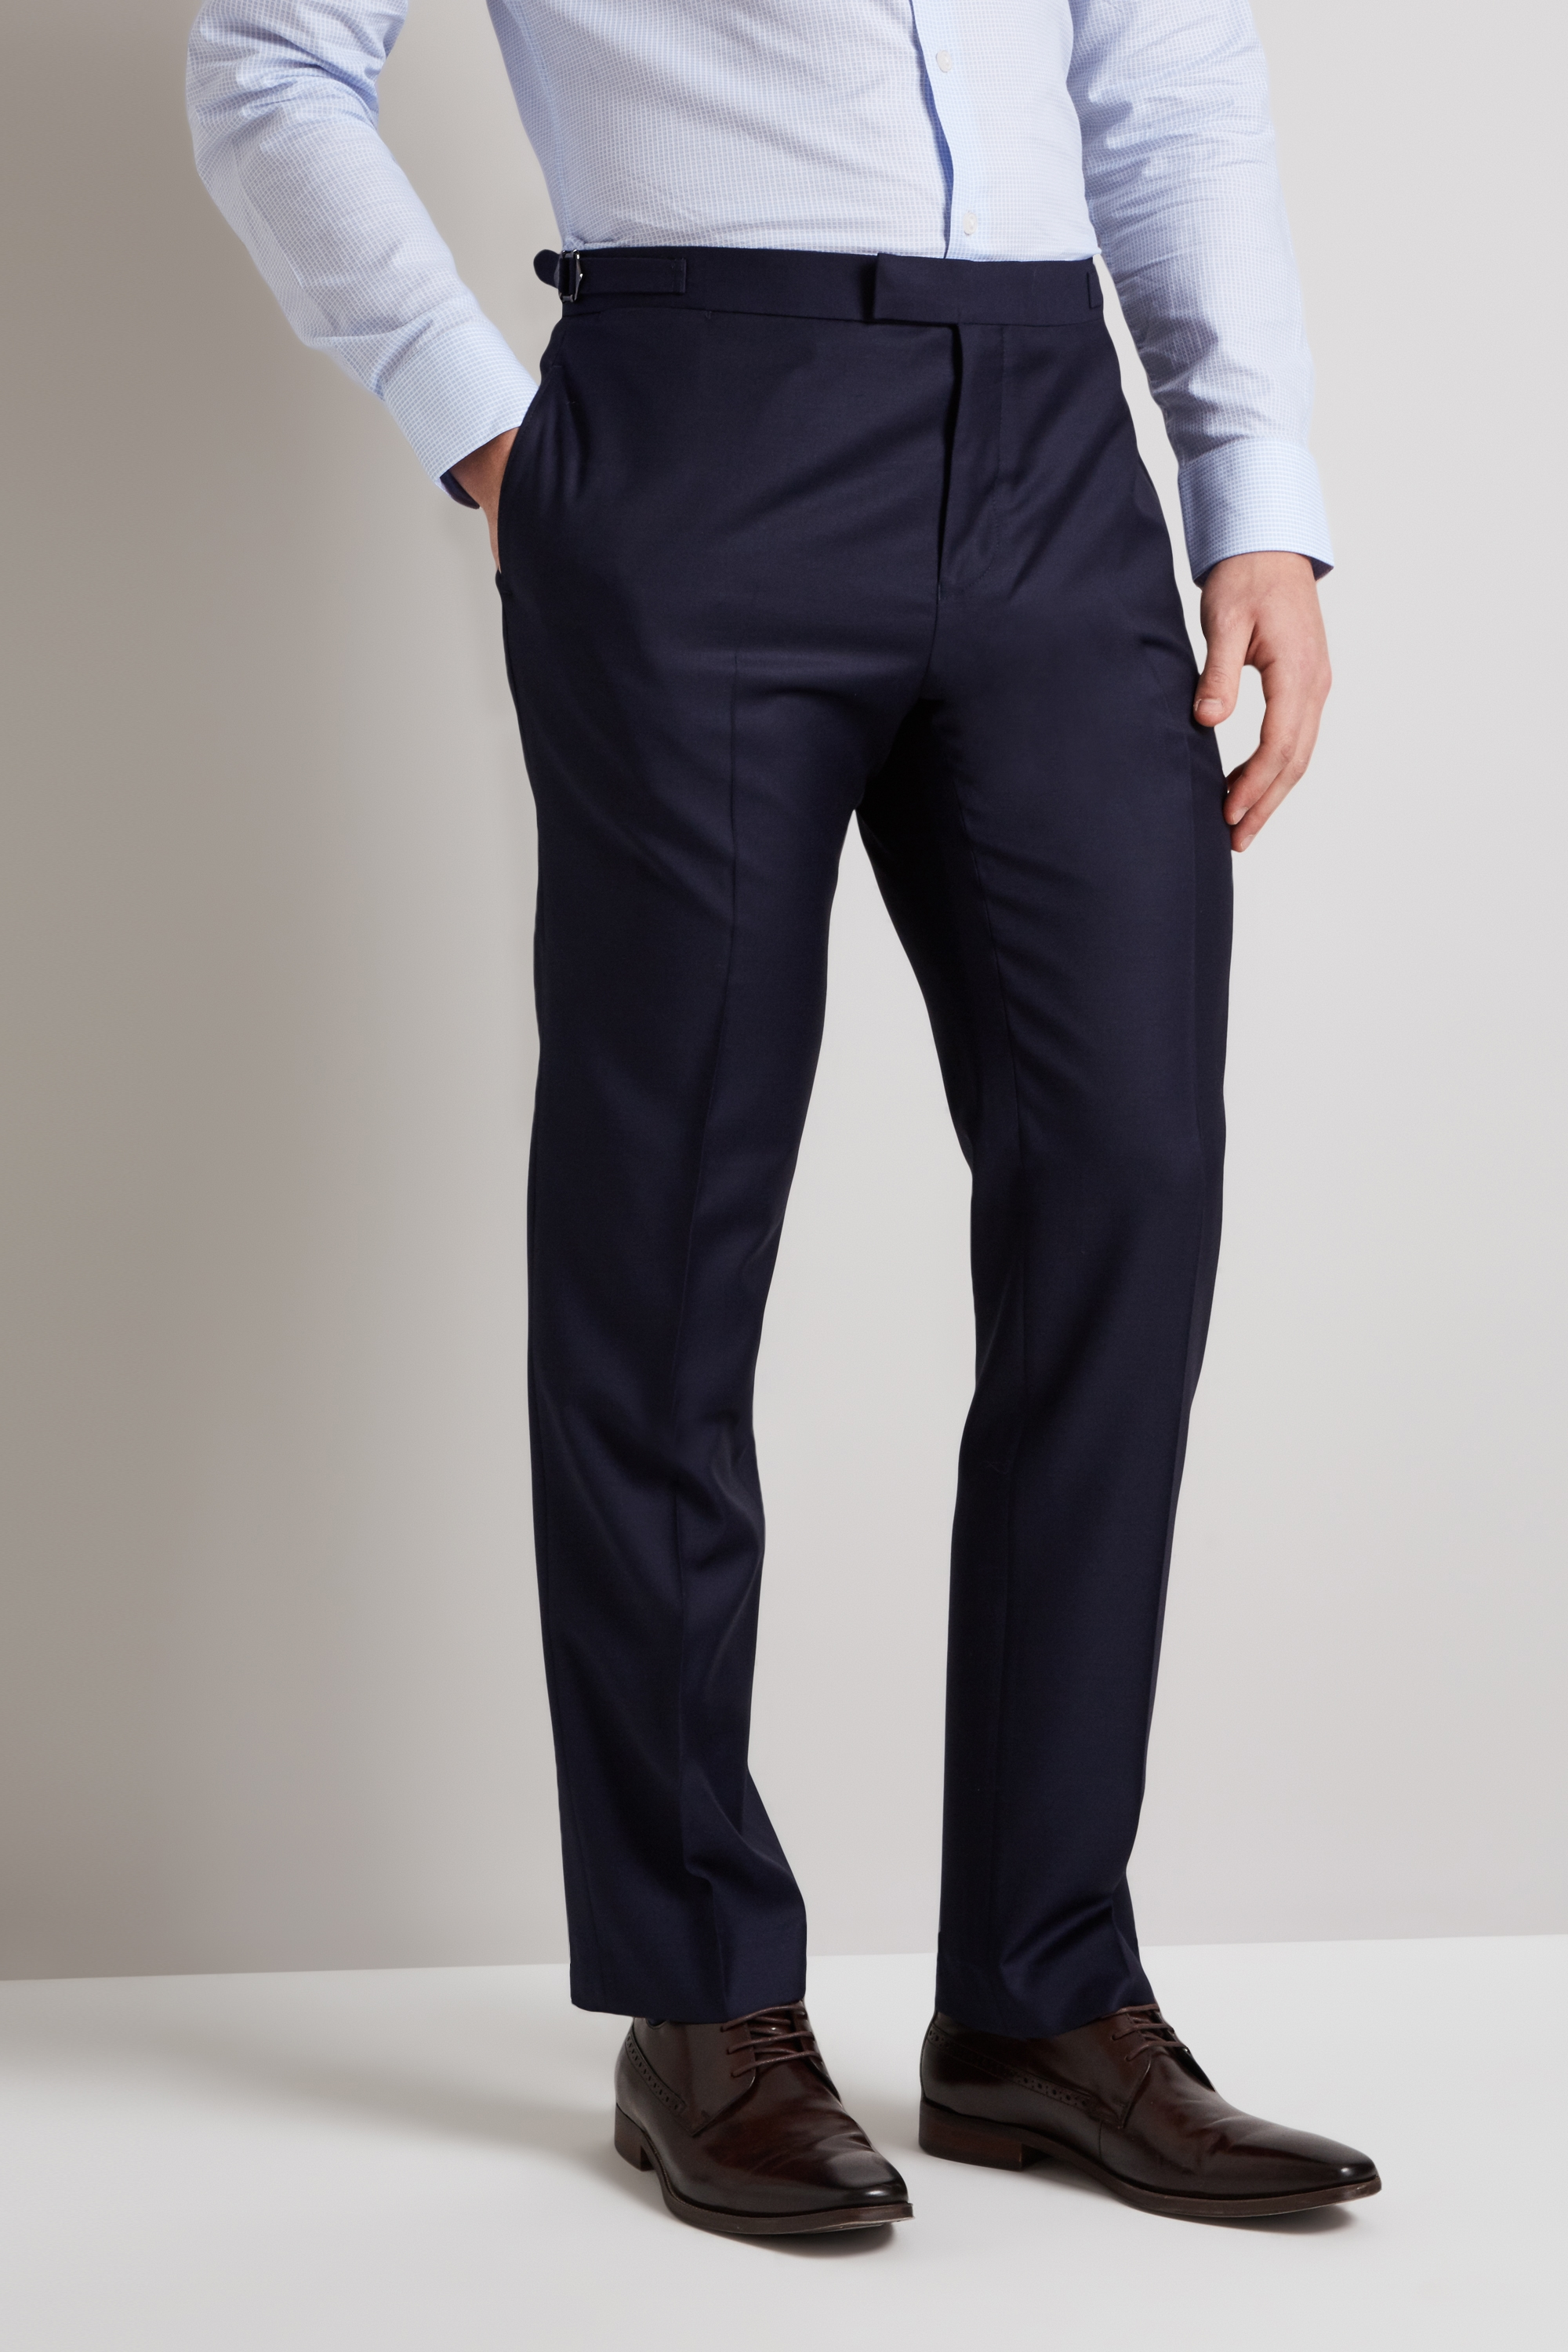 world-wide renown timeless design outlet online Details about Hardy Amies Mens Suit Trousers Tailored Fit Plain Navy Blue  Formal Pants